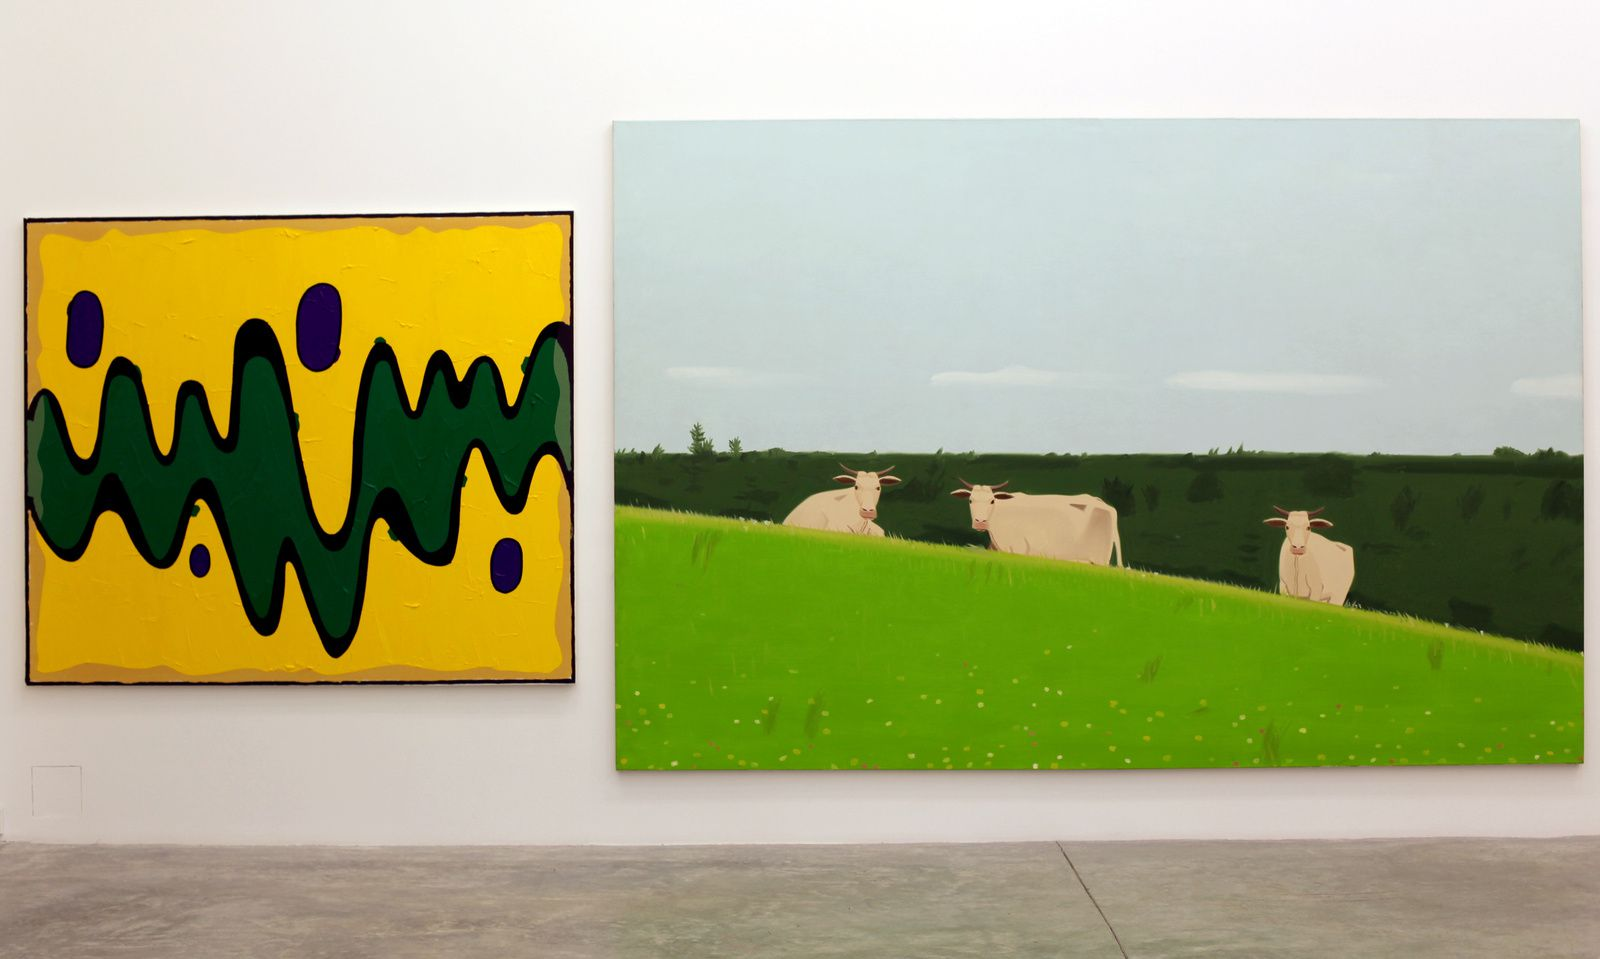 """Walt Disney Production1947-2014 #20"", 2014 de Bertrand Lavier et ""Three cows"", 1981 de Alex Katz Courtesy Almine Rech Gallery © Photo Éric Simon"